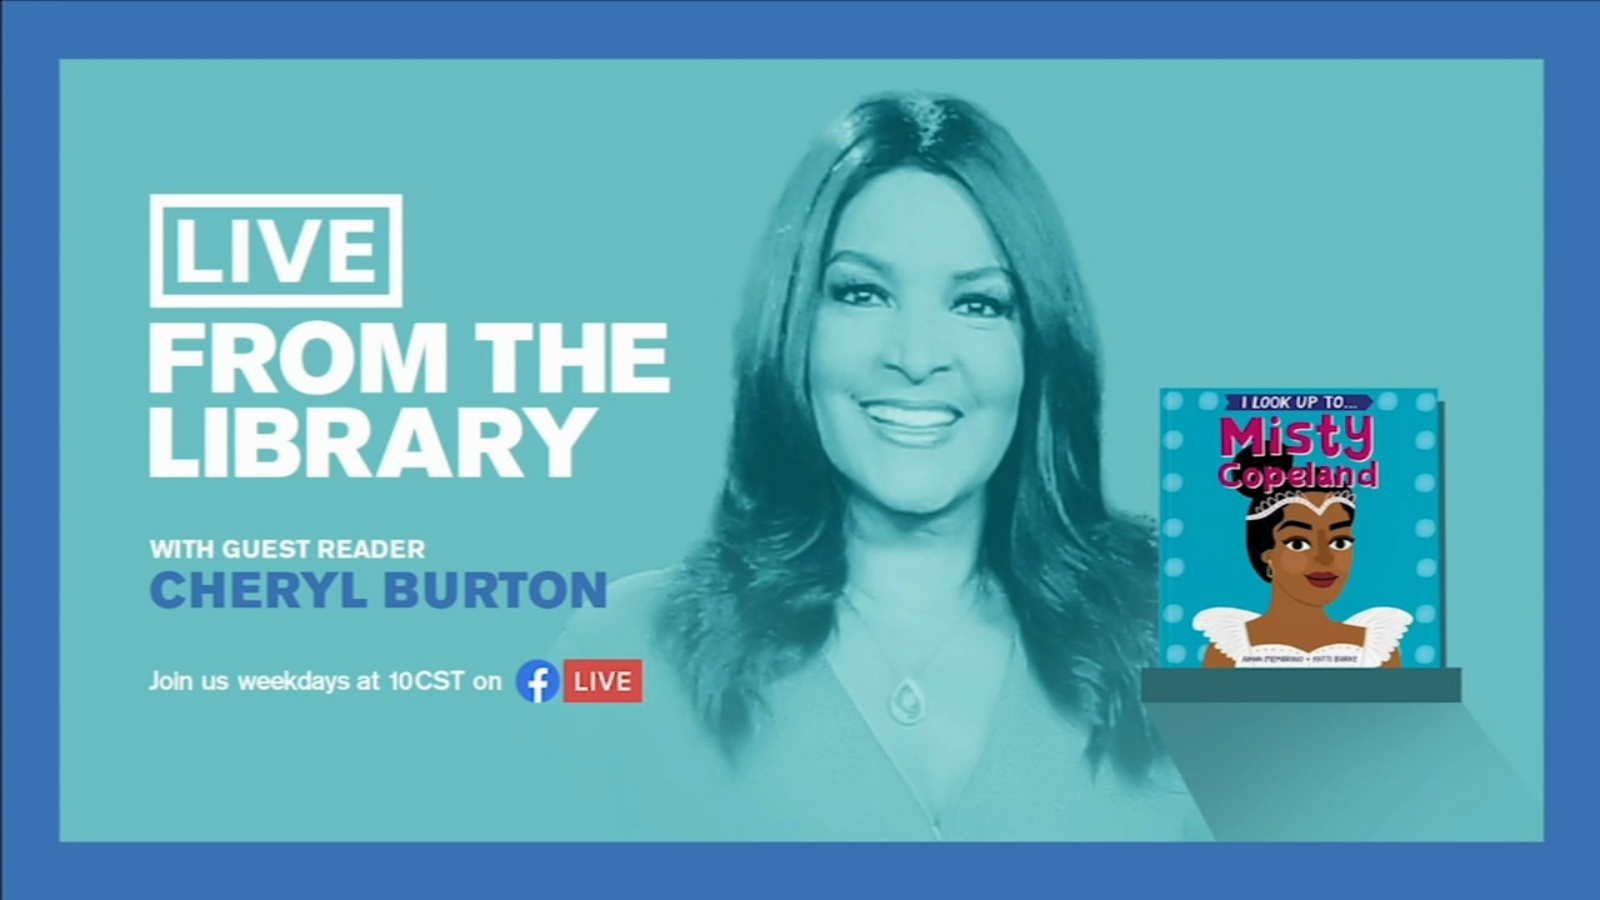 Cheryl Burton to read to Chicago kids on 'Live from the Library'